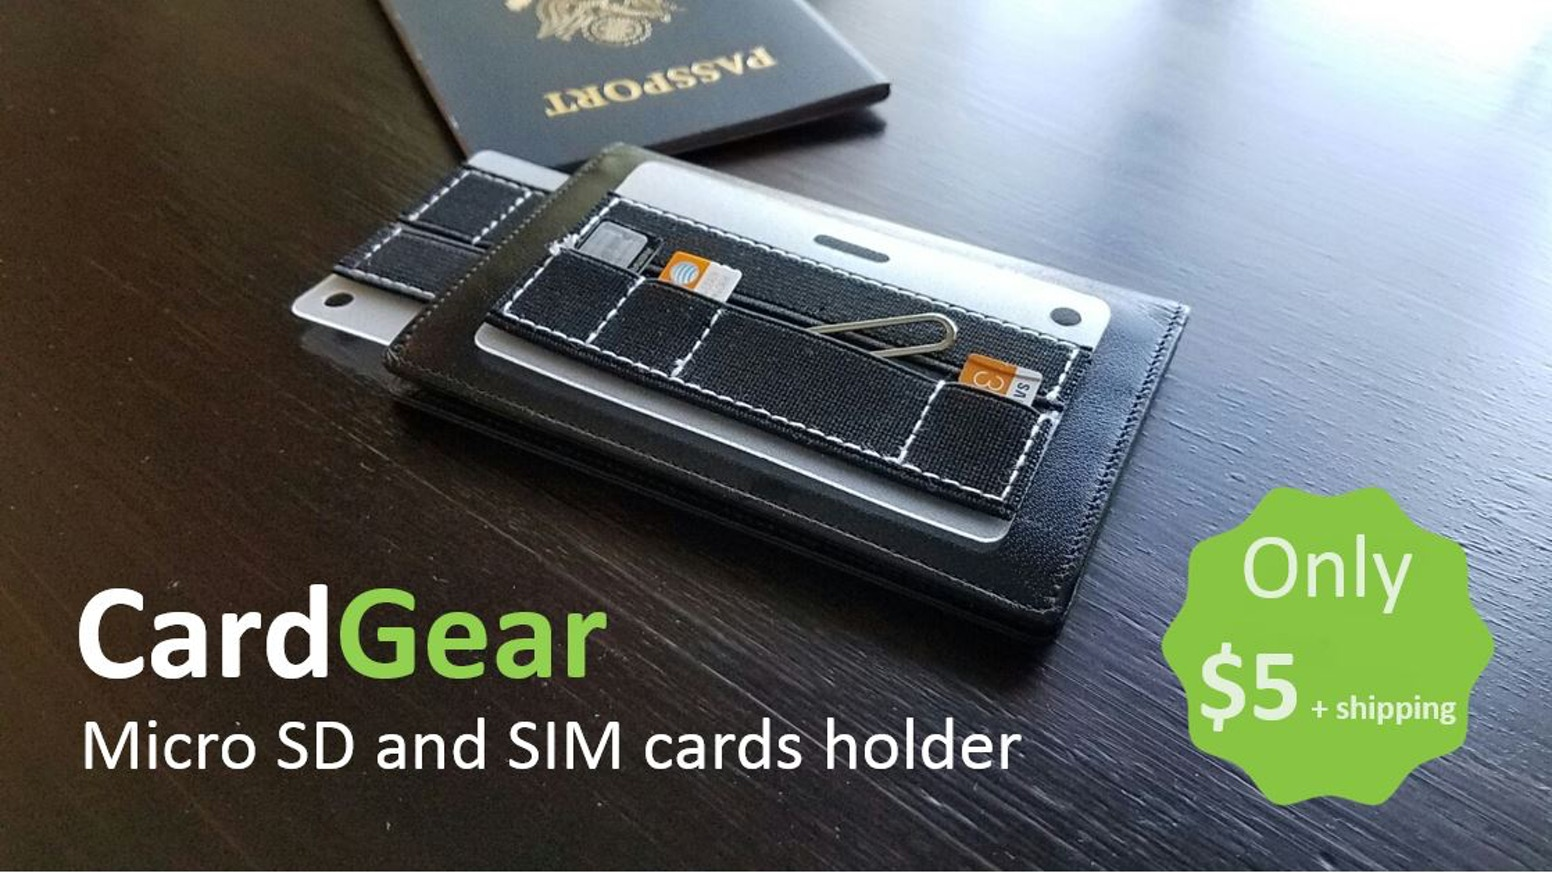 The thinnest organizer for your Micro SD cards and SIM cards. Perfect size for travelers, photographers, and everyone's wallet